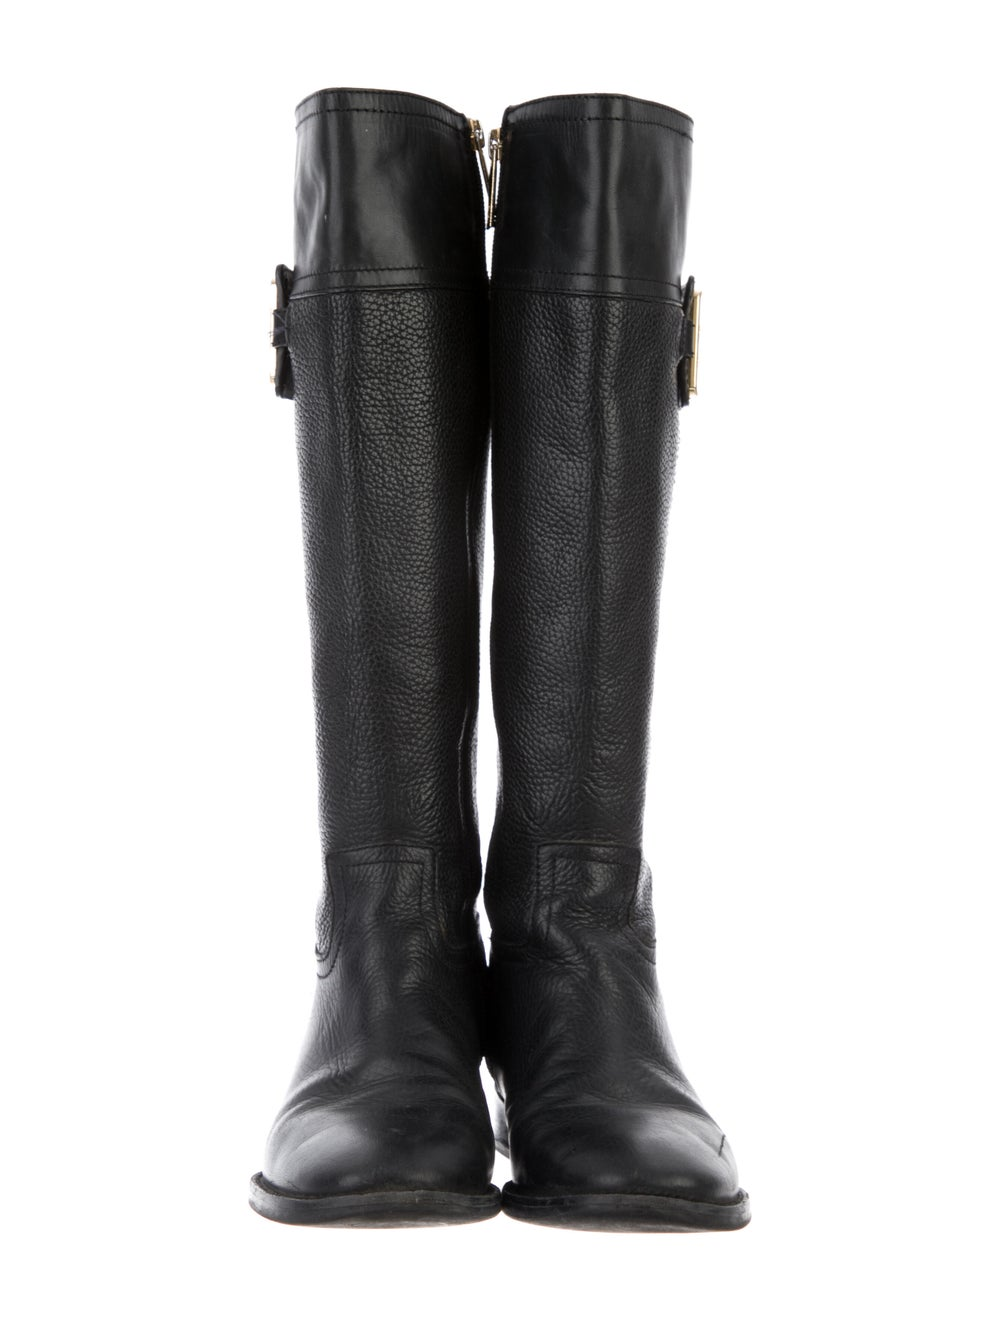 Tory Burch Leather Riding Boots Black - image 3